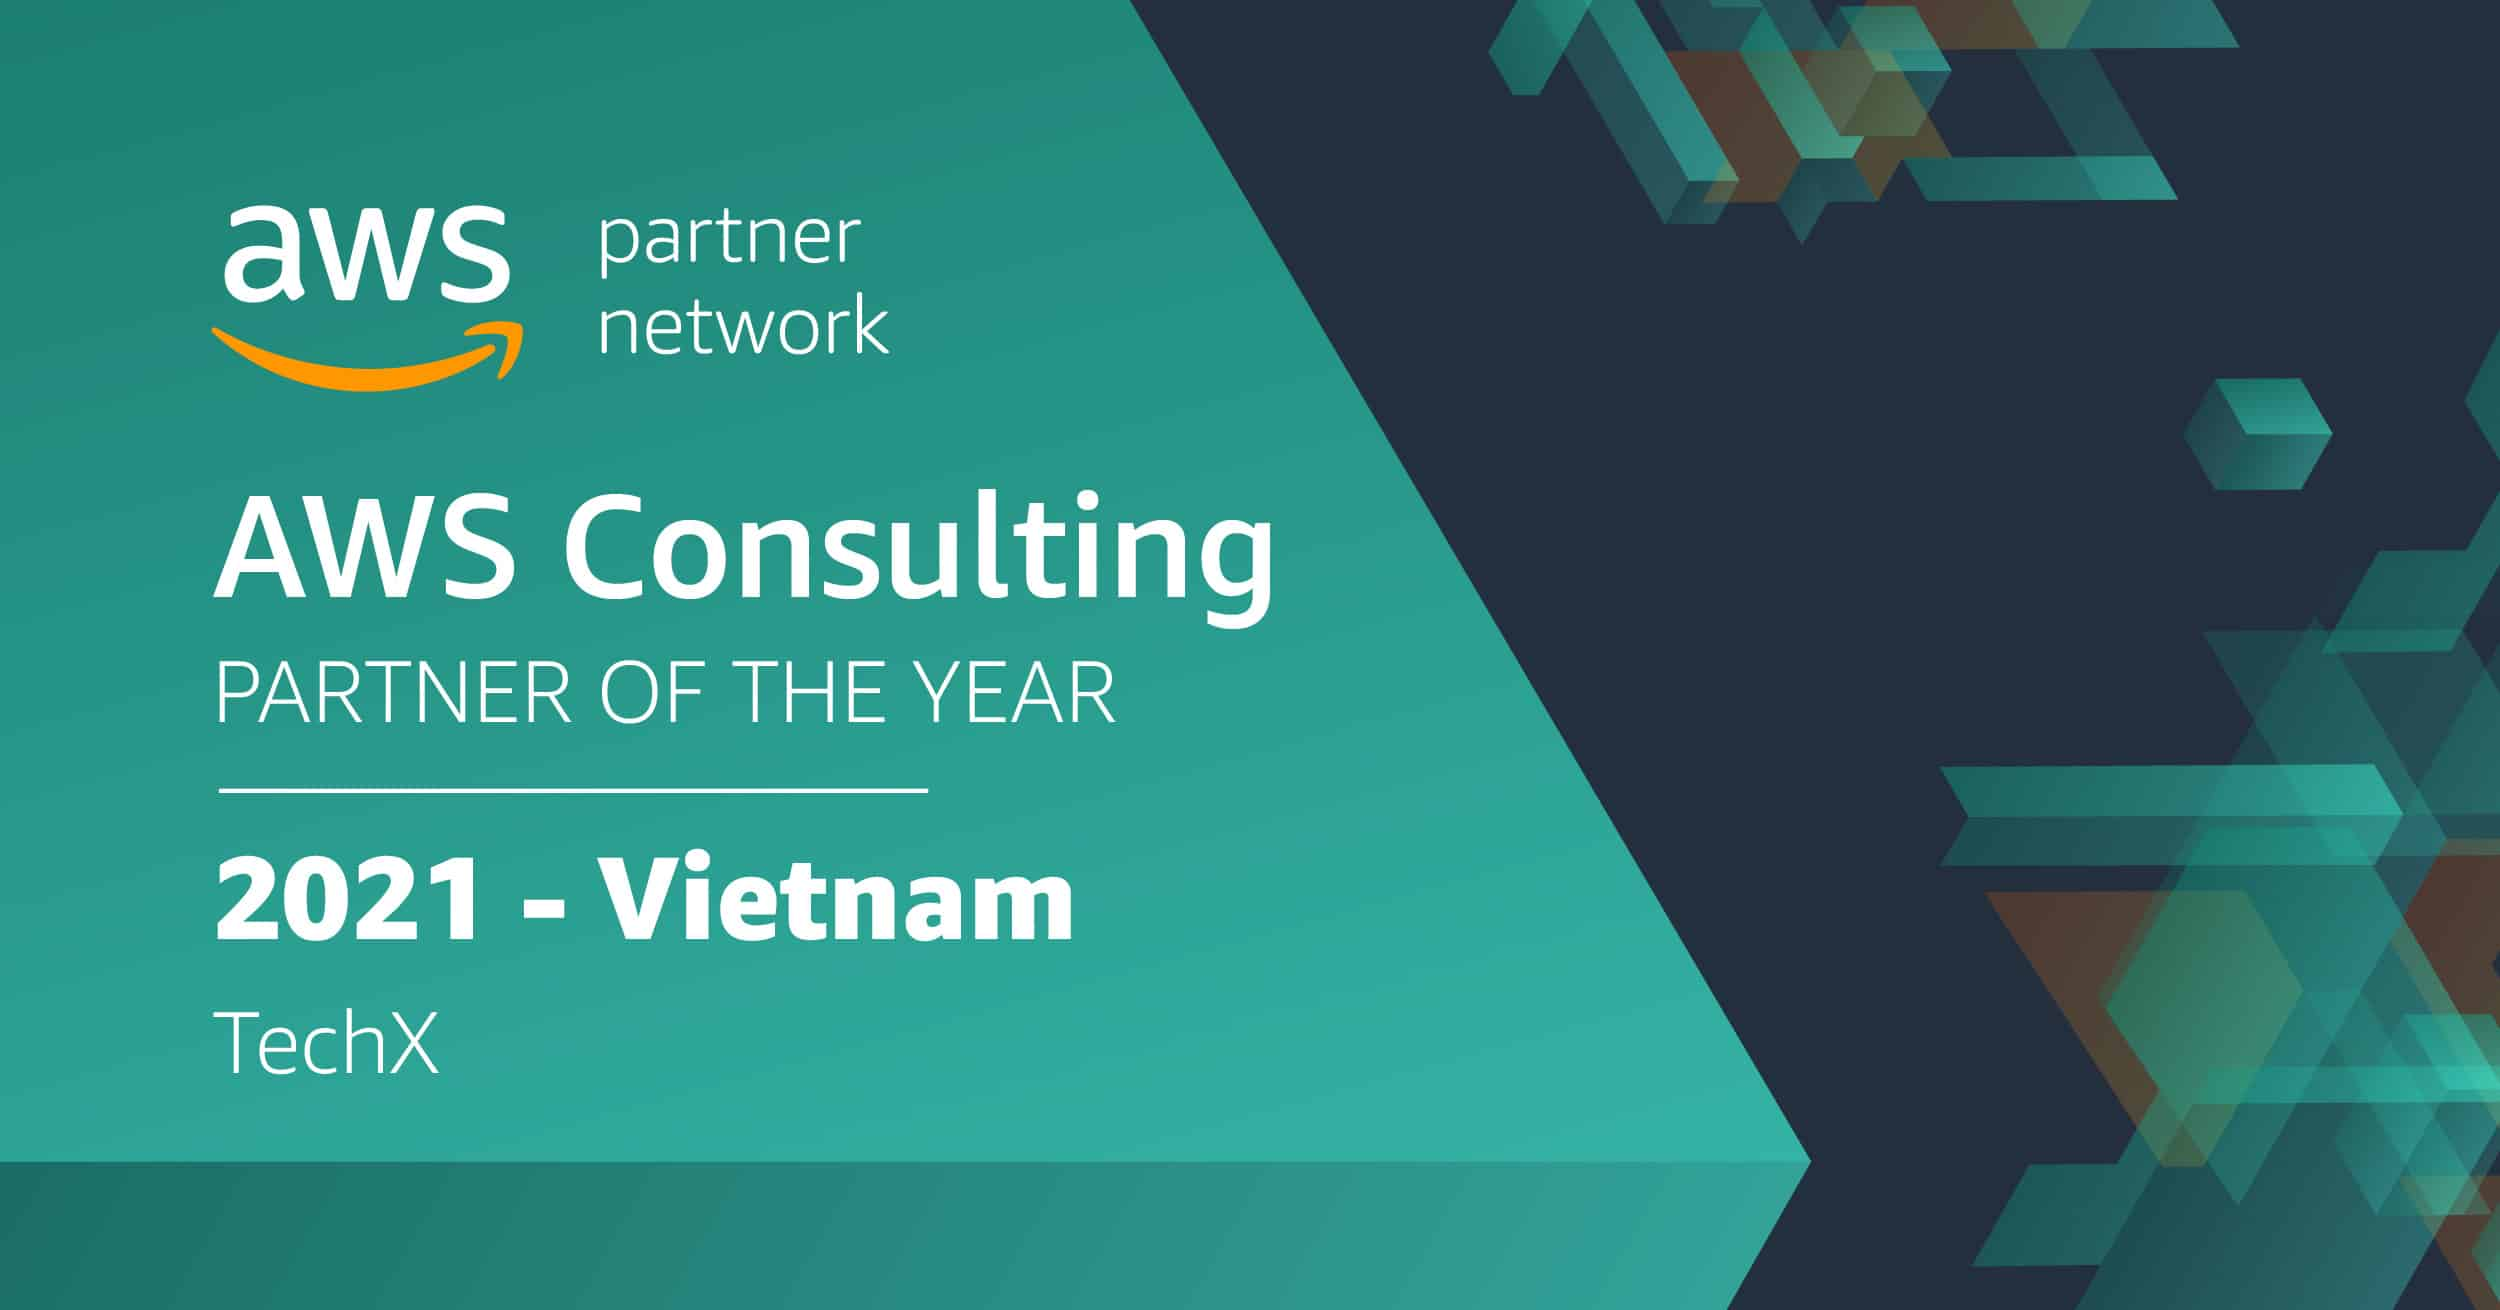 AWS Consulting Partner of the Year 2021 - Vietnam